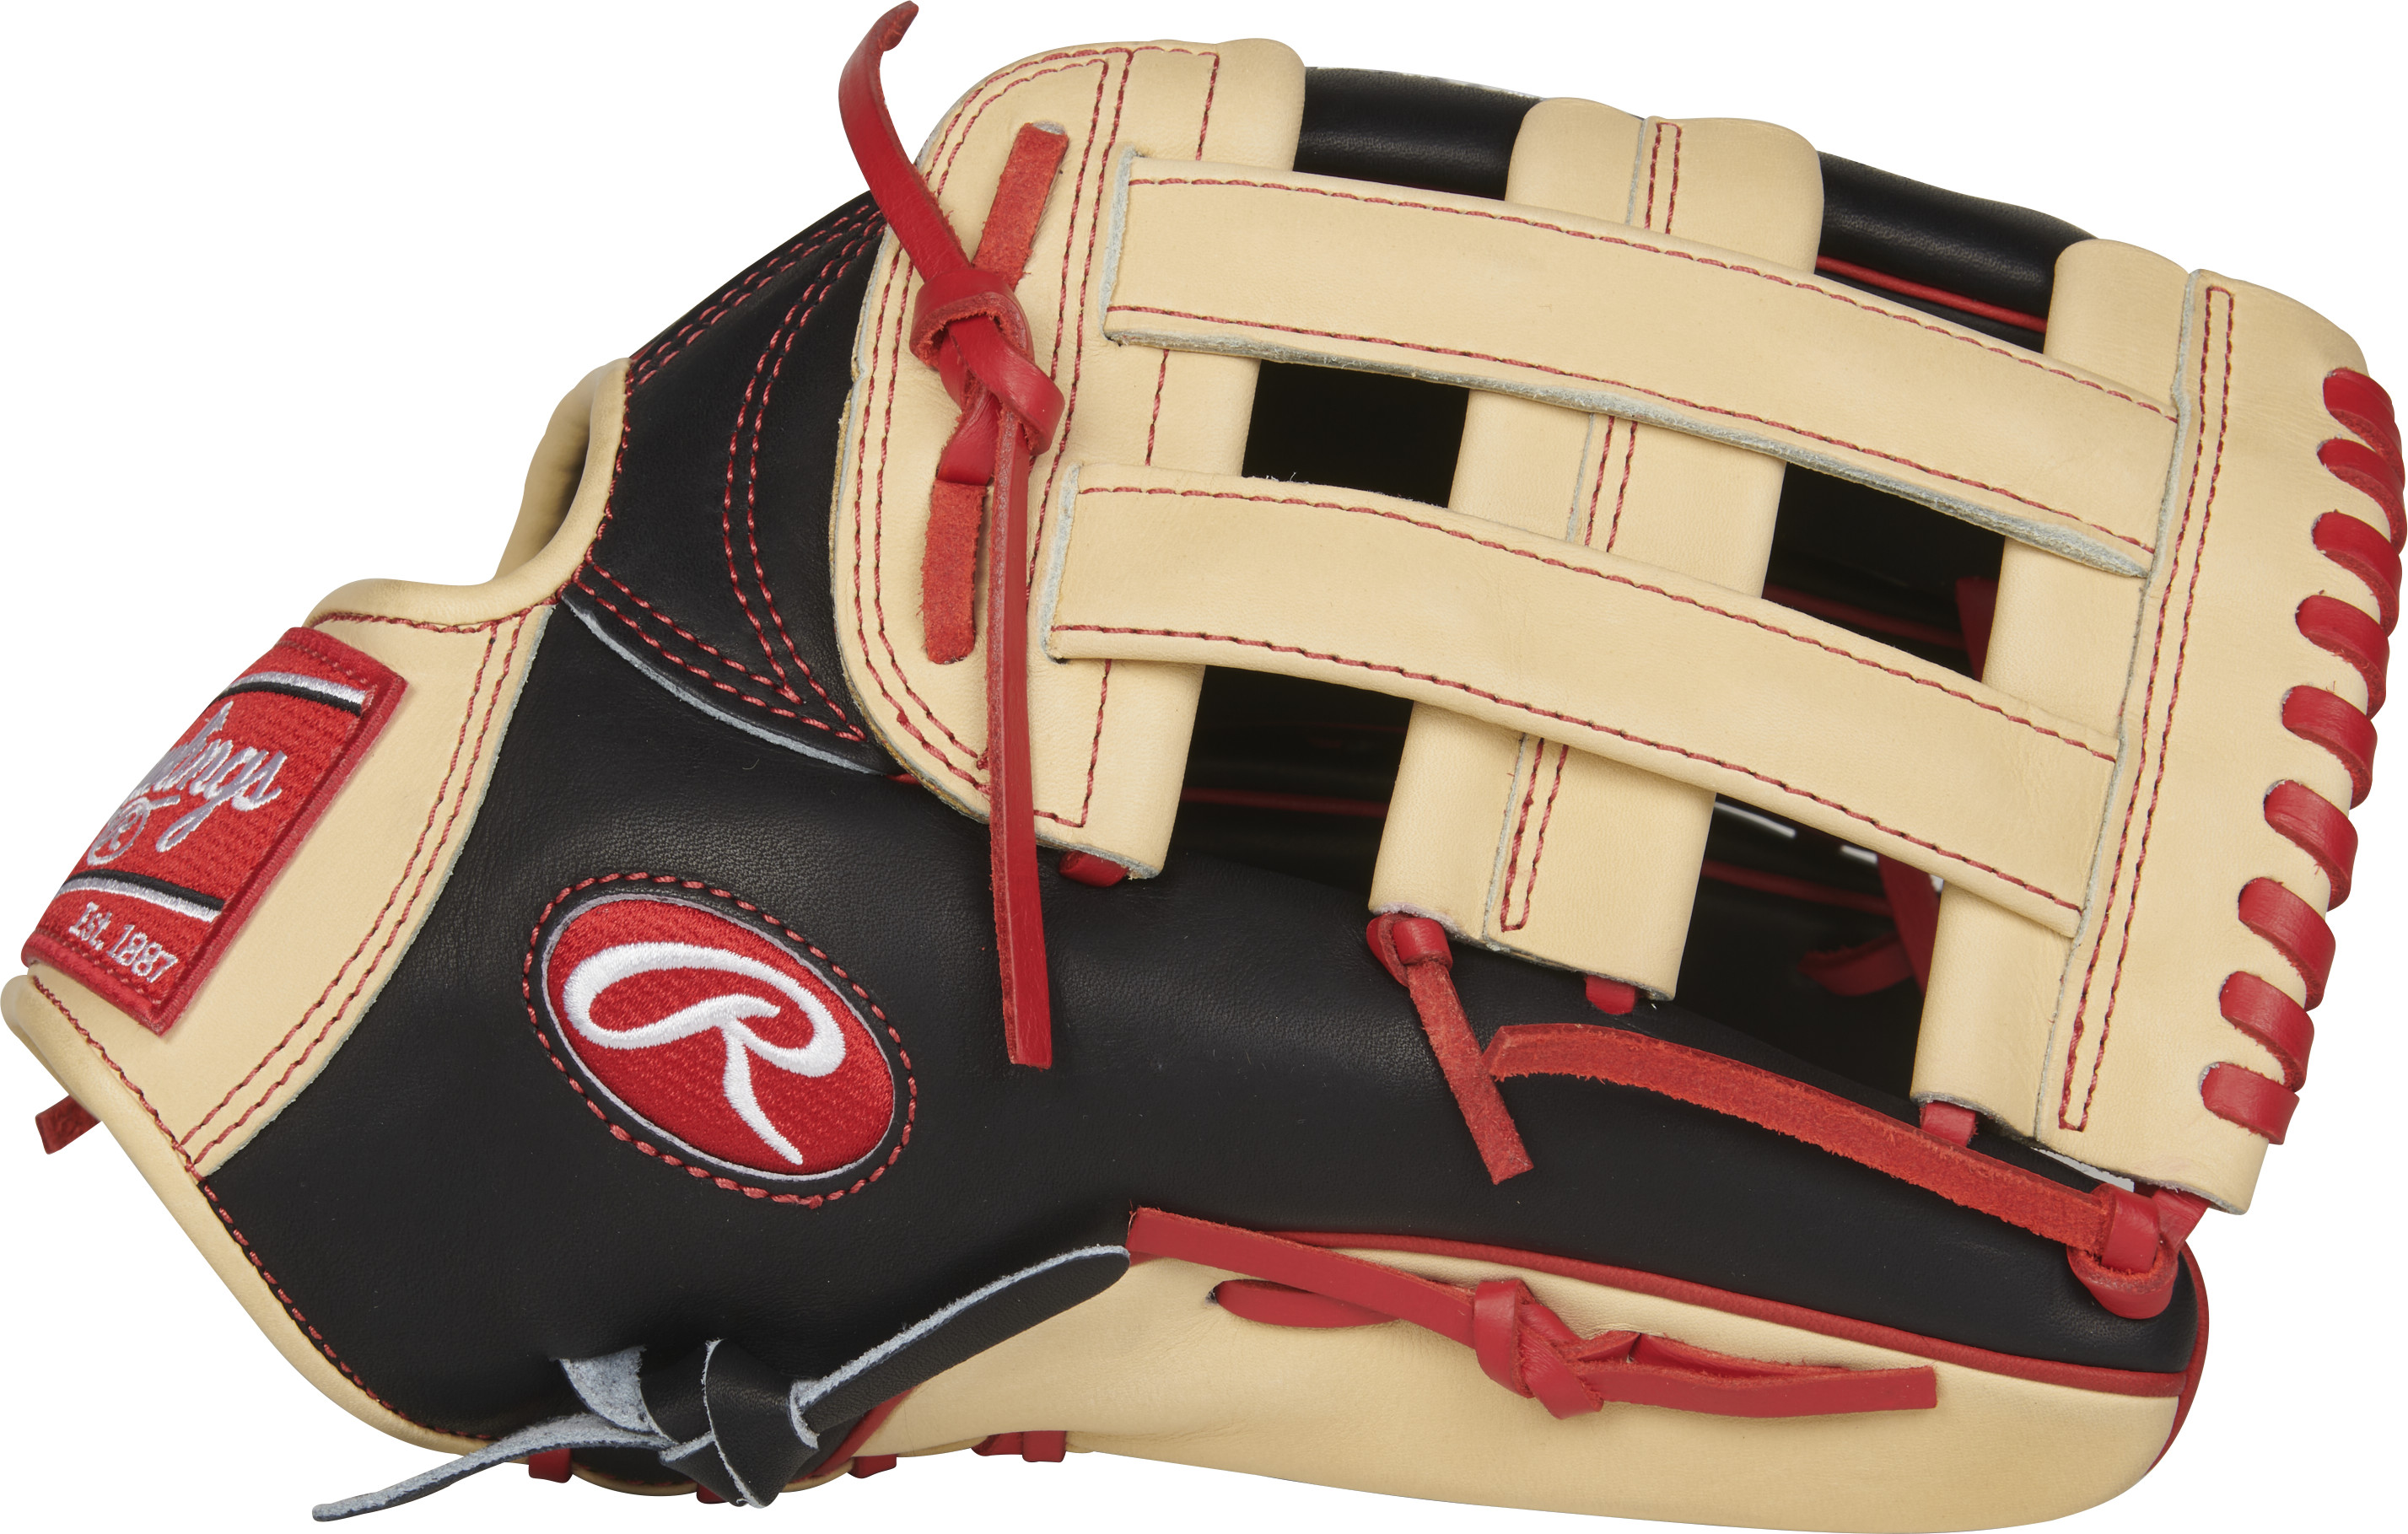 http://www.bestbatdeals.com/images/gloves/rawlings/PROBH34-3.jpg